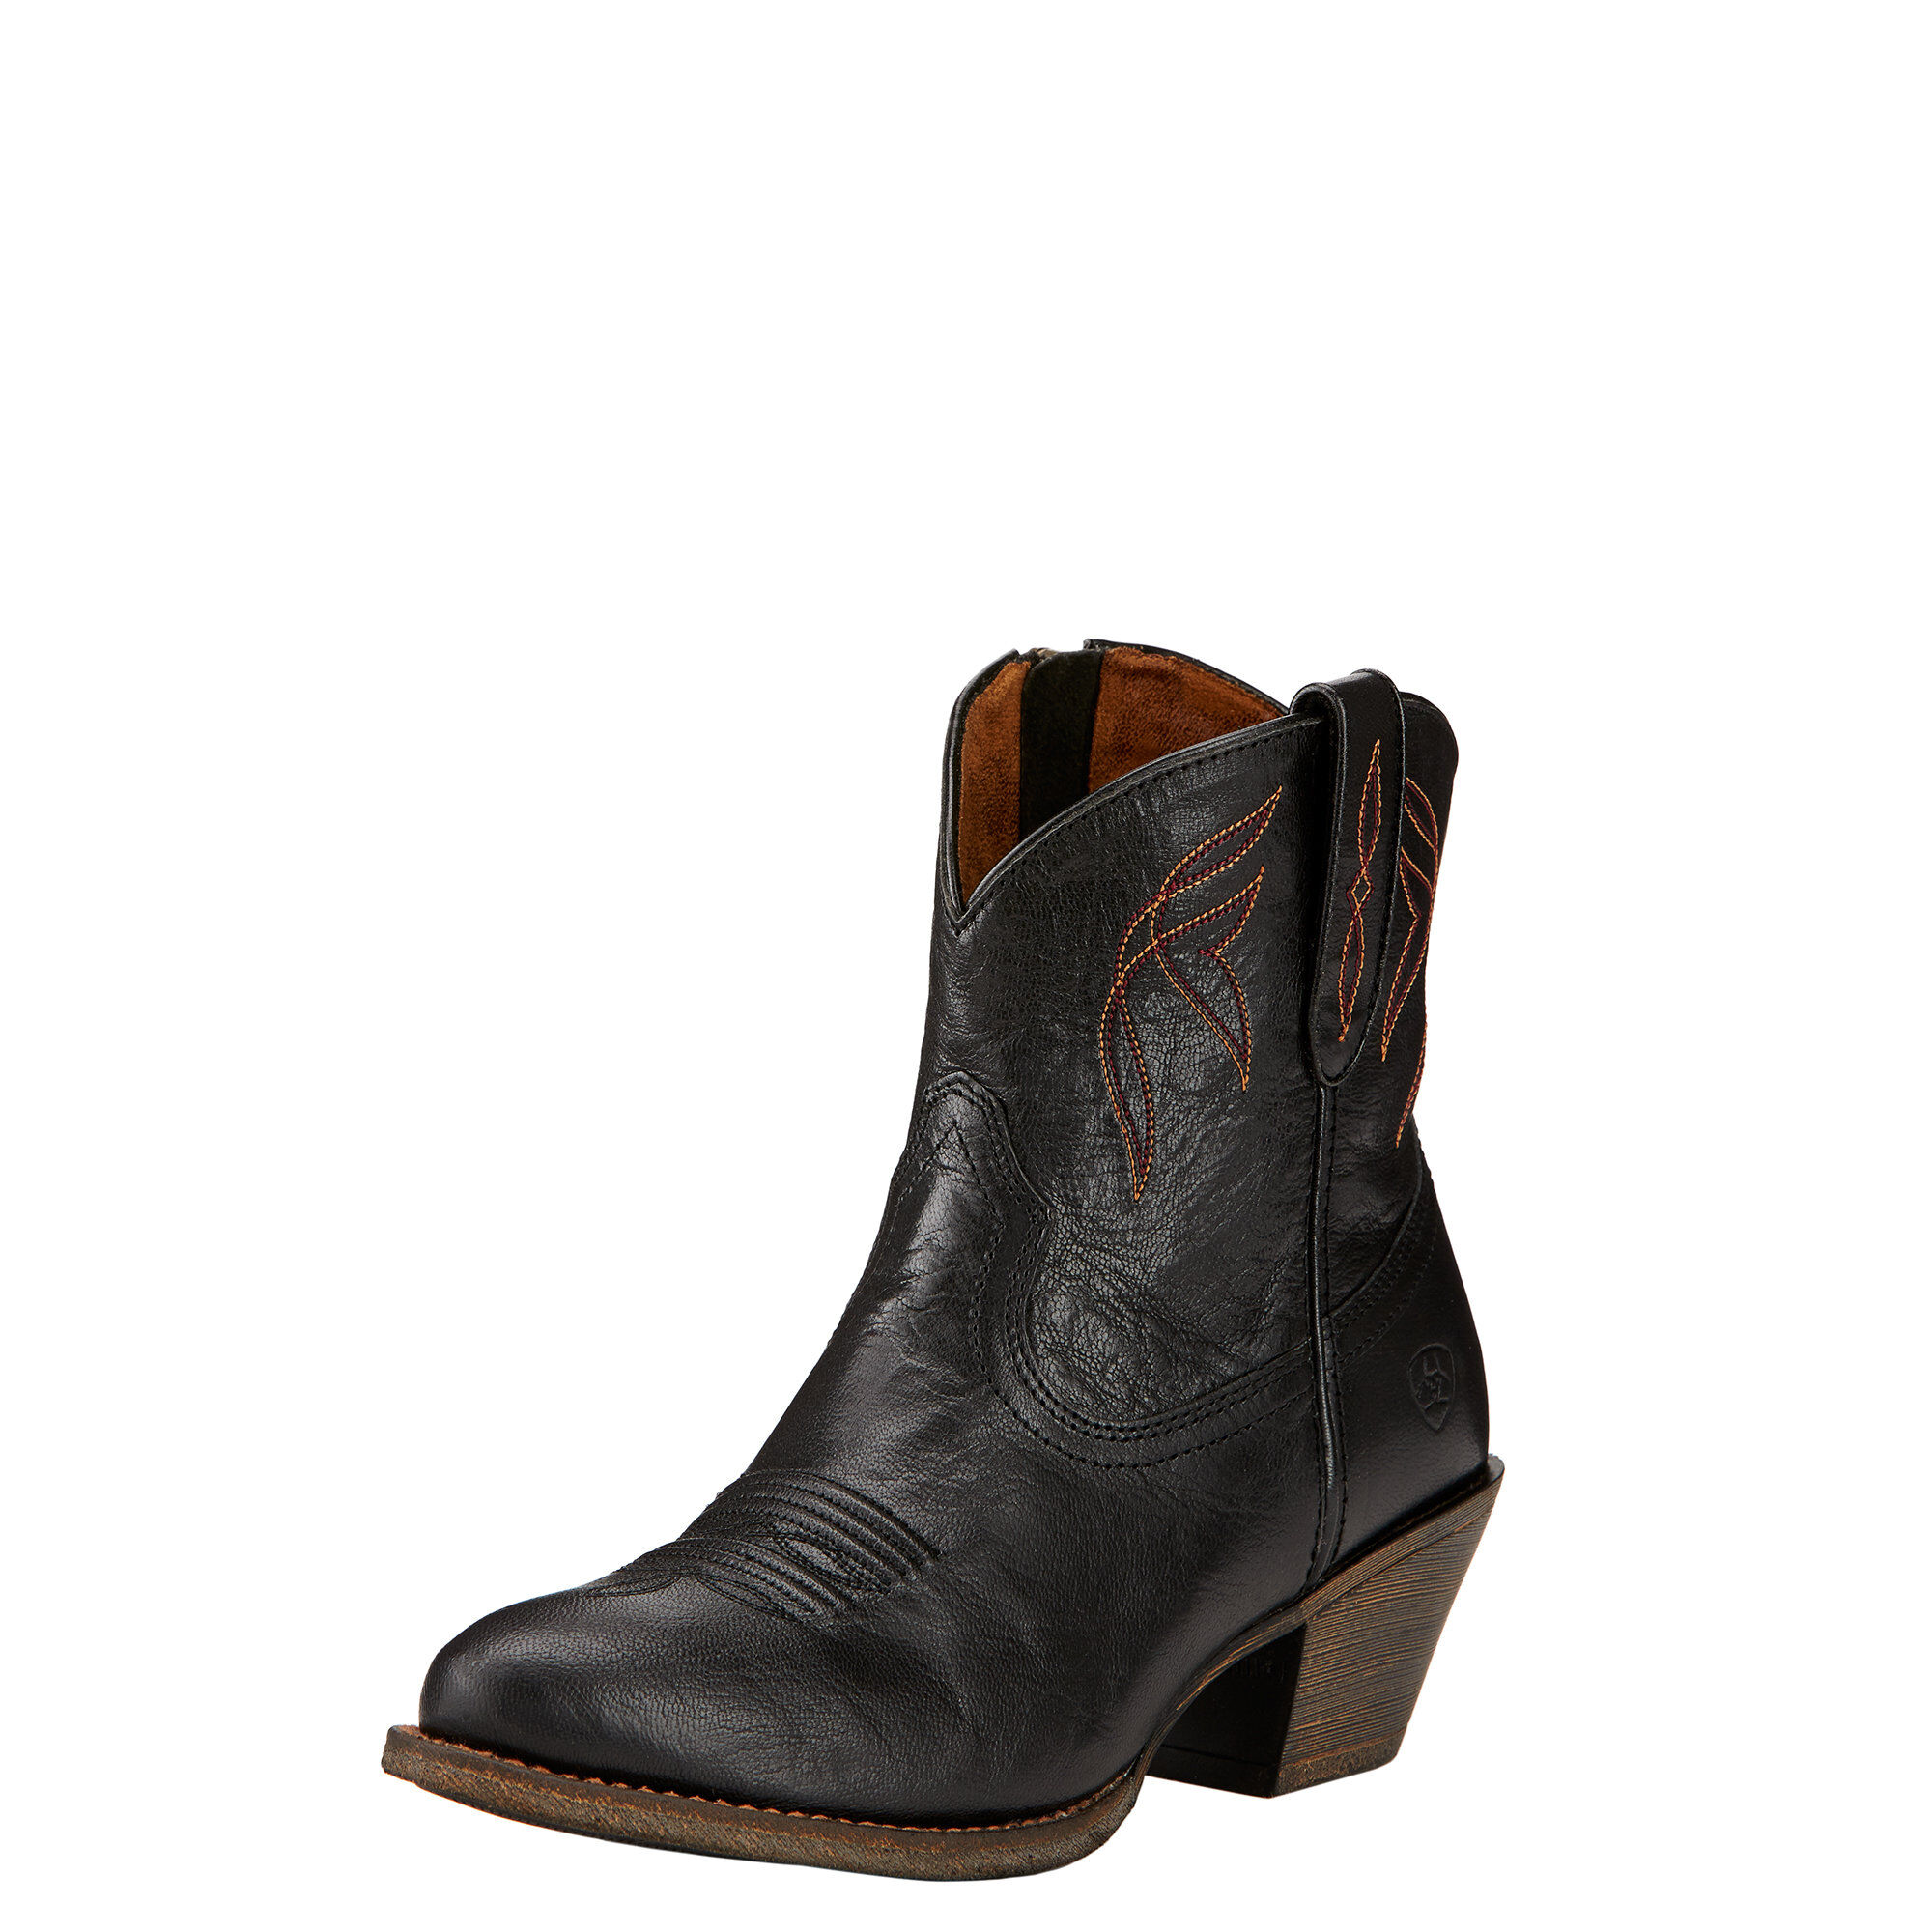 Women's Darlin Western Boots in Old Black Leather by Ariat